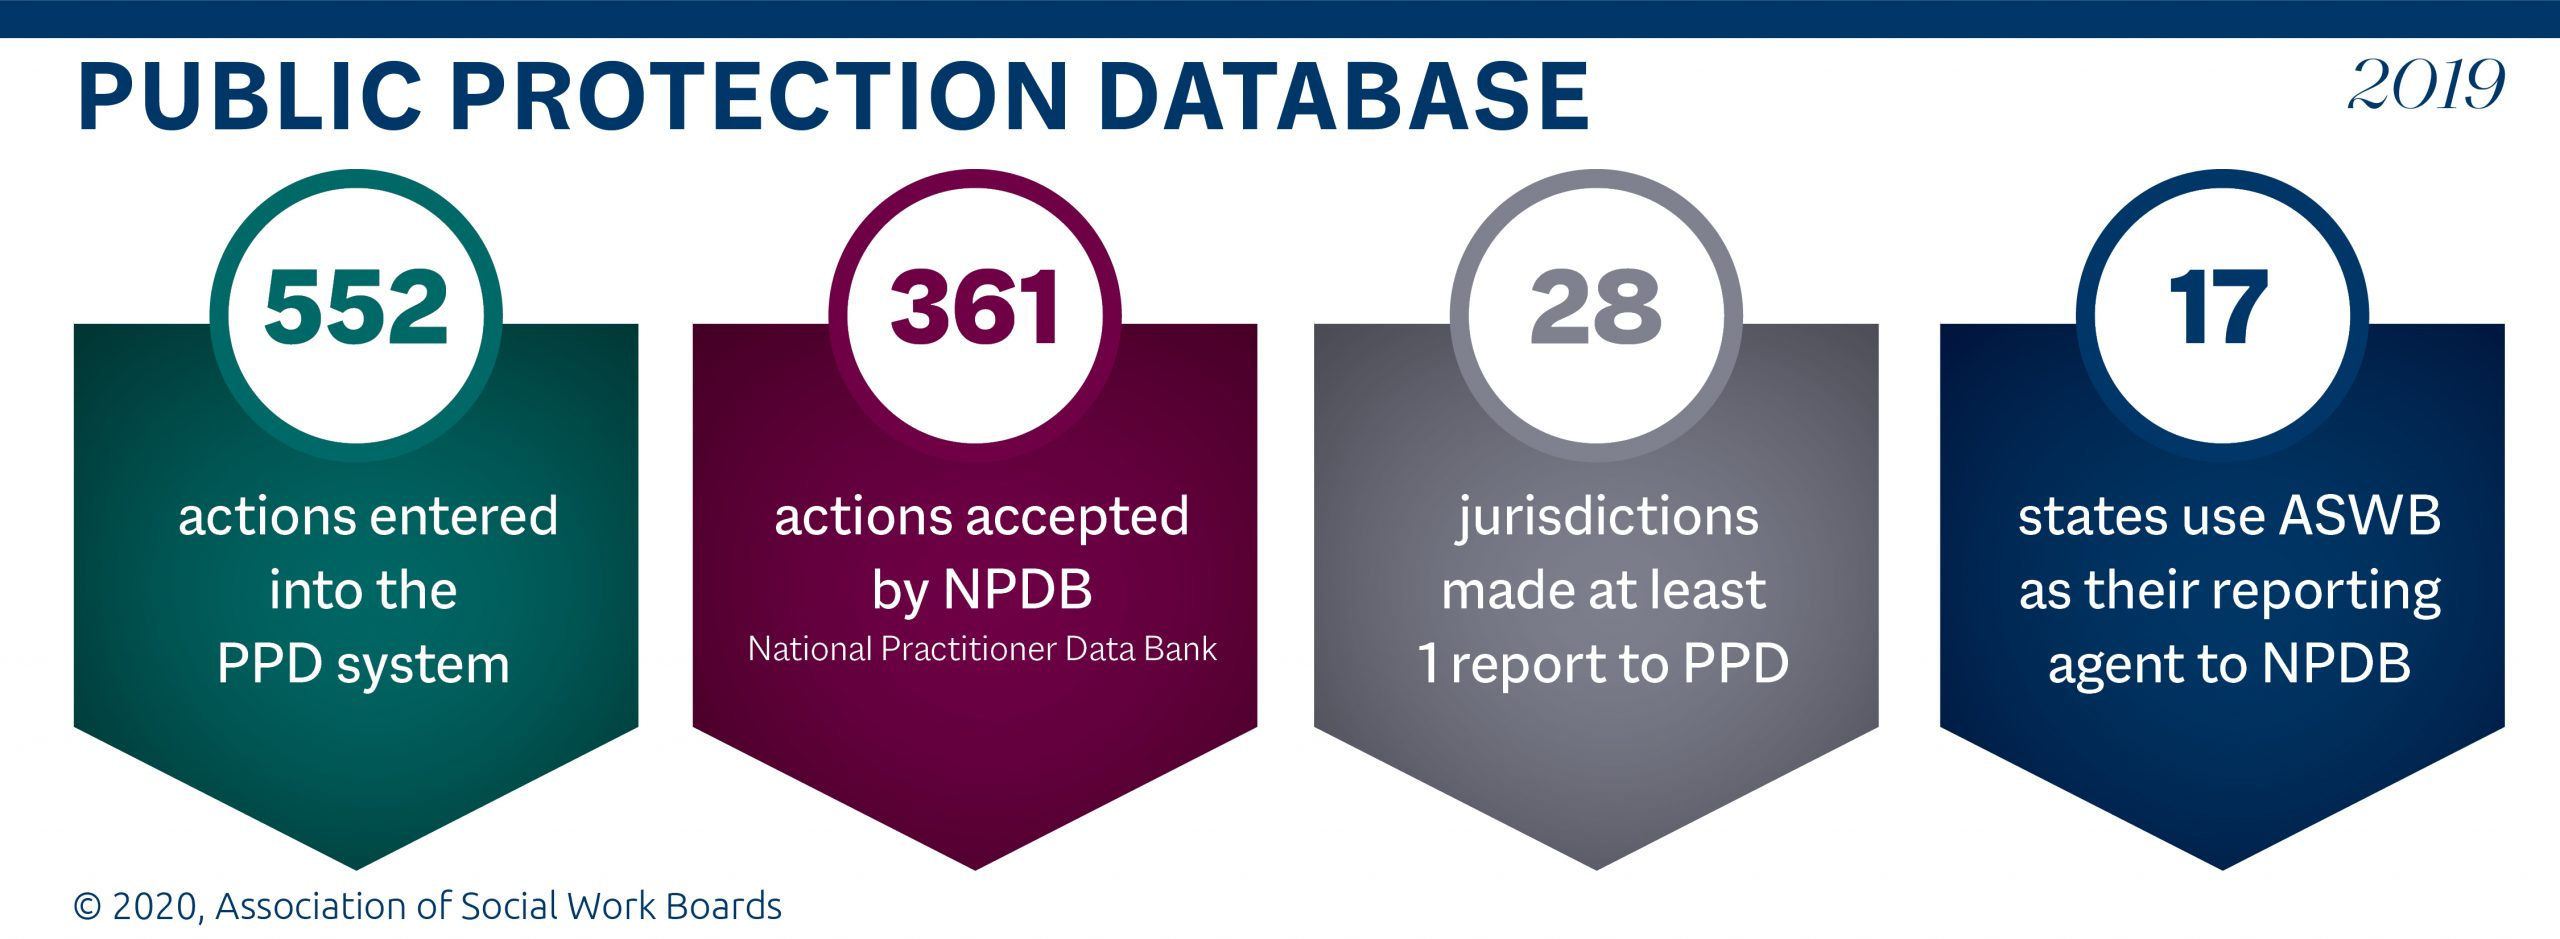 Graphic showing that 552 disciplinary actions were reported to ASWB in 2019; 361 disciplinary actions were accepted into the National Practitioner Data Bank; 28 jurisdictions made at least one report to PPD; and 17 states use PPD as their reporting agent for the National Practitioner Data Bank